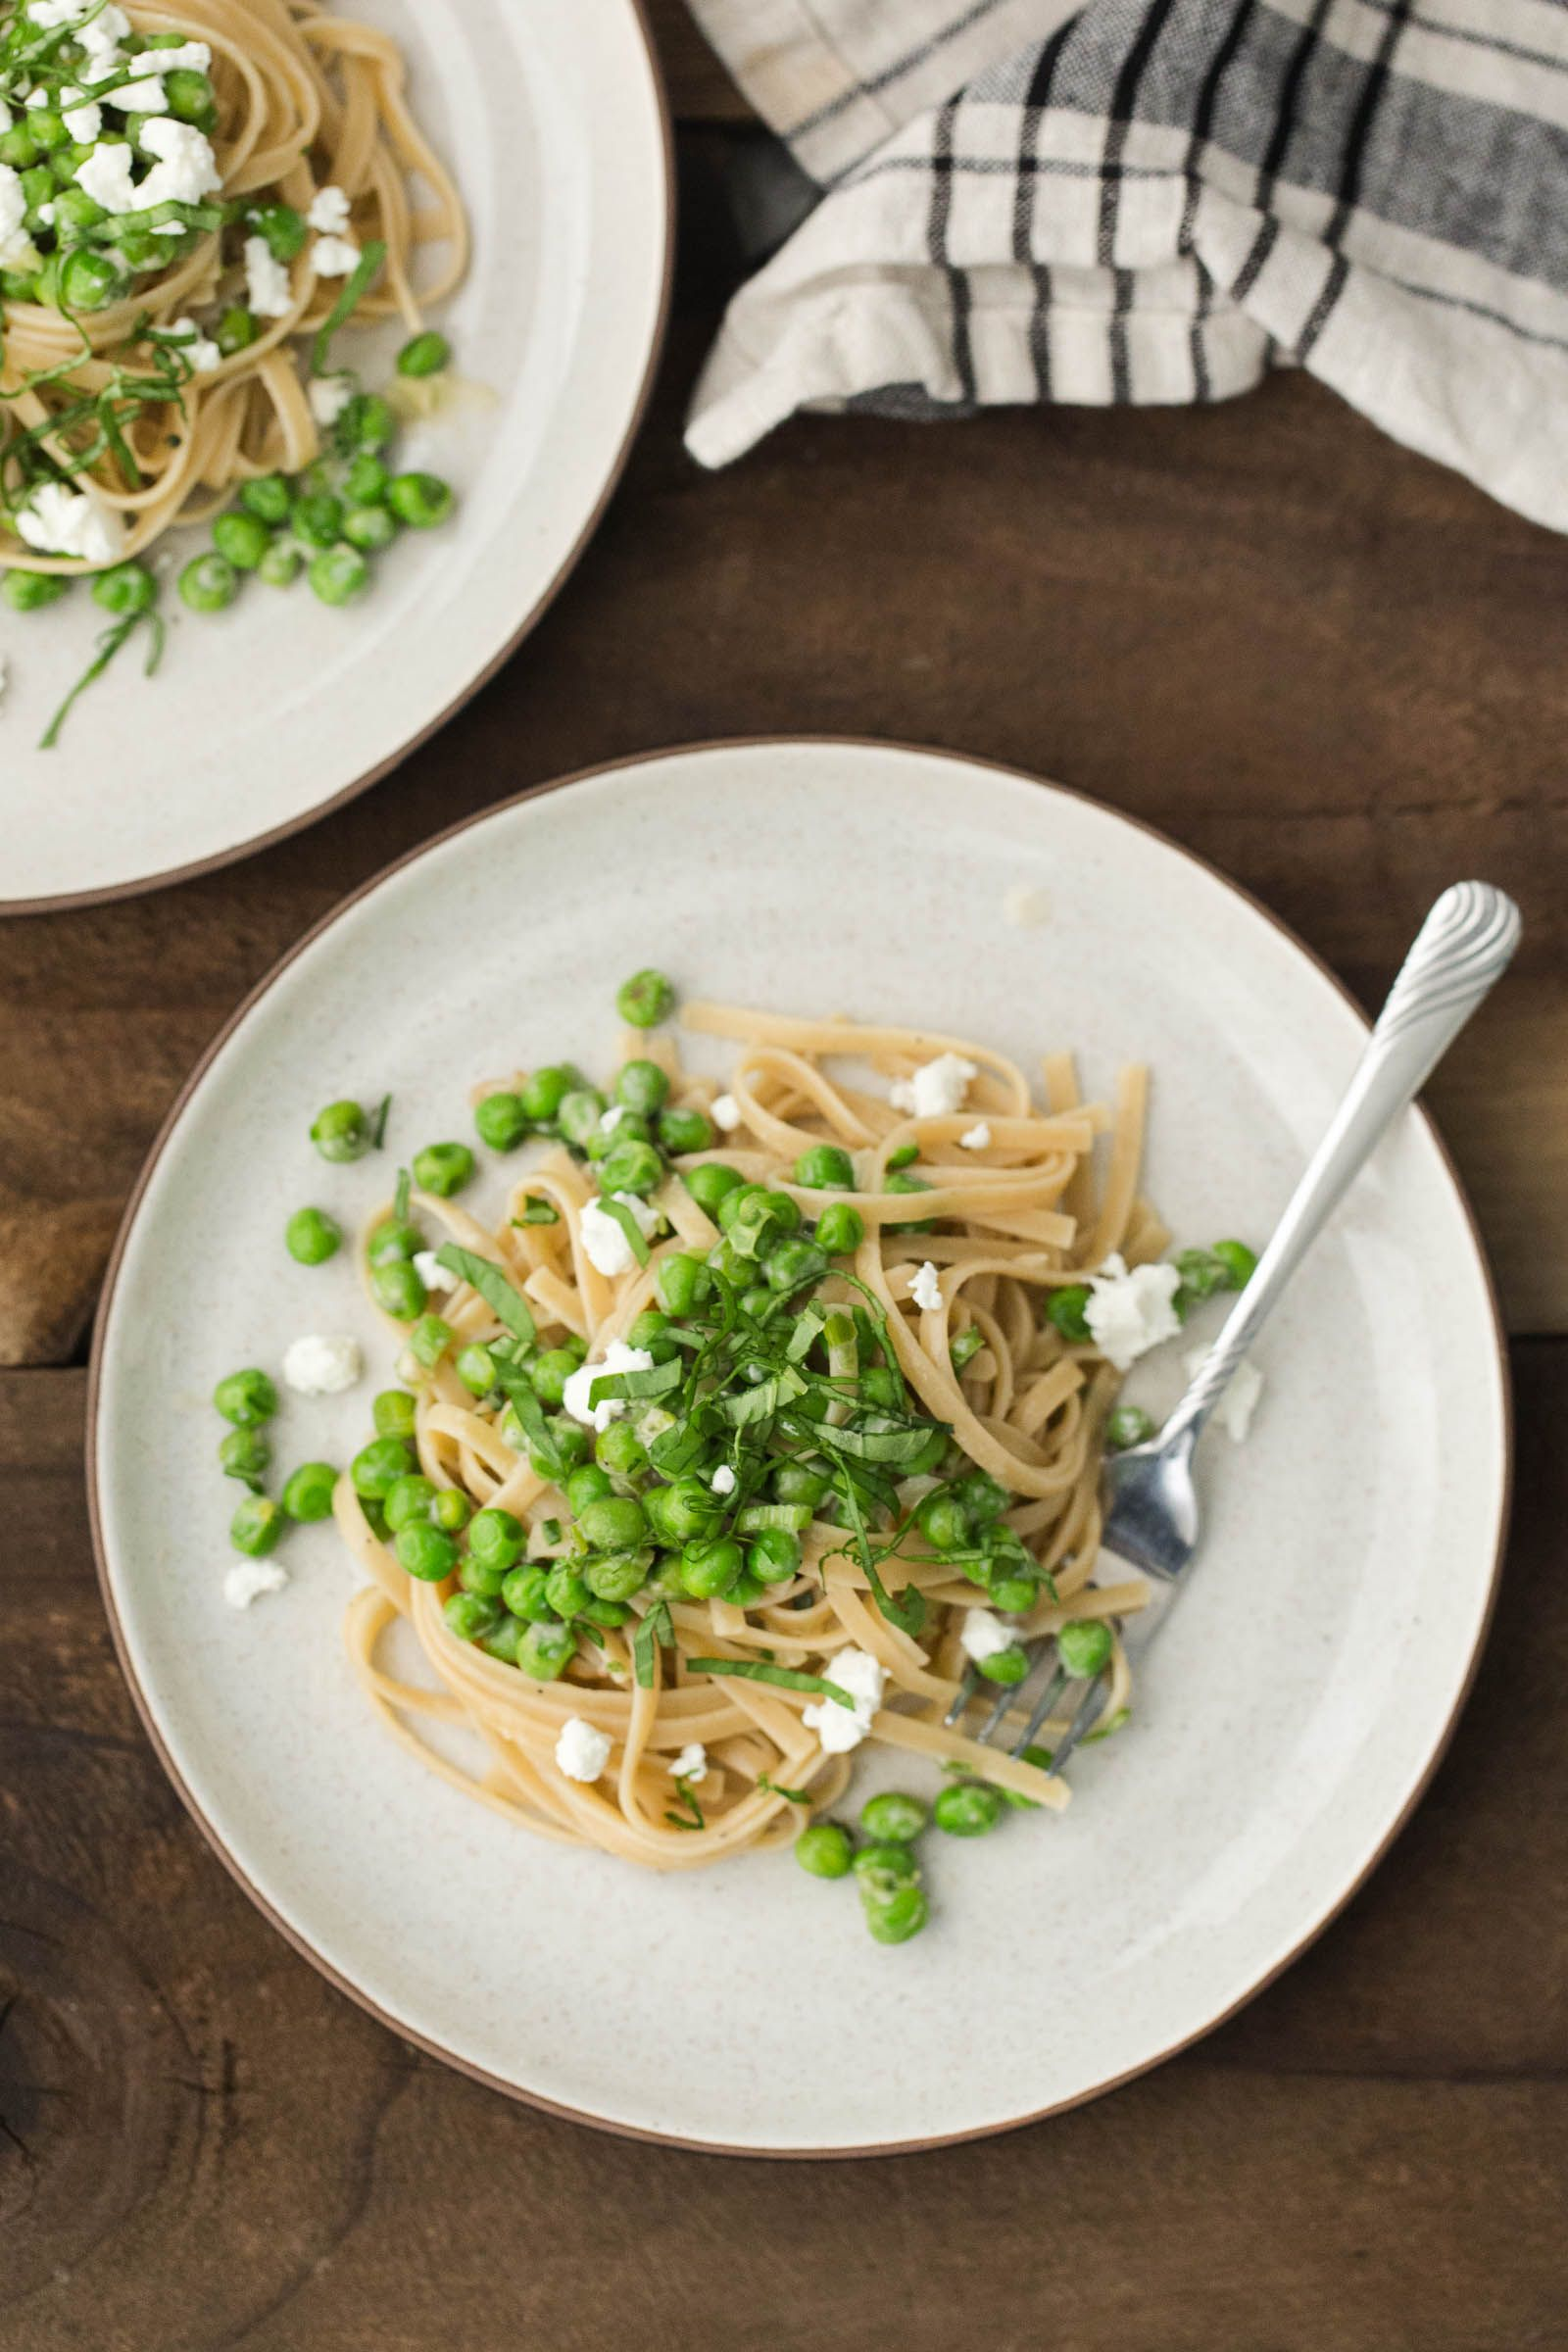 Pea Pasta With Goat Cheese Sauce Naturally Recipe Goat Cheese Pasta Super Healthy Recipes Healthy Recipes